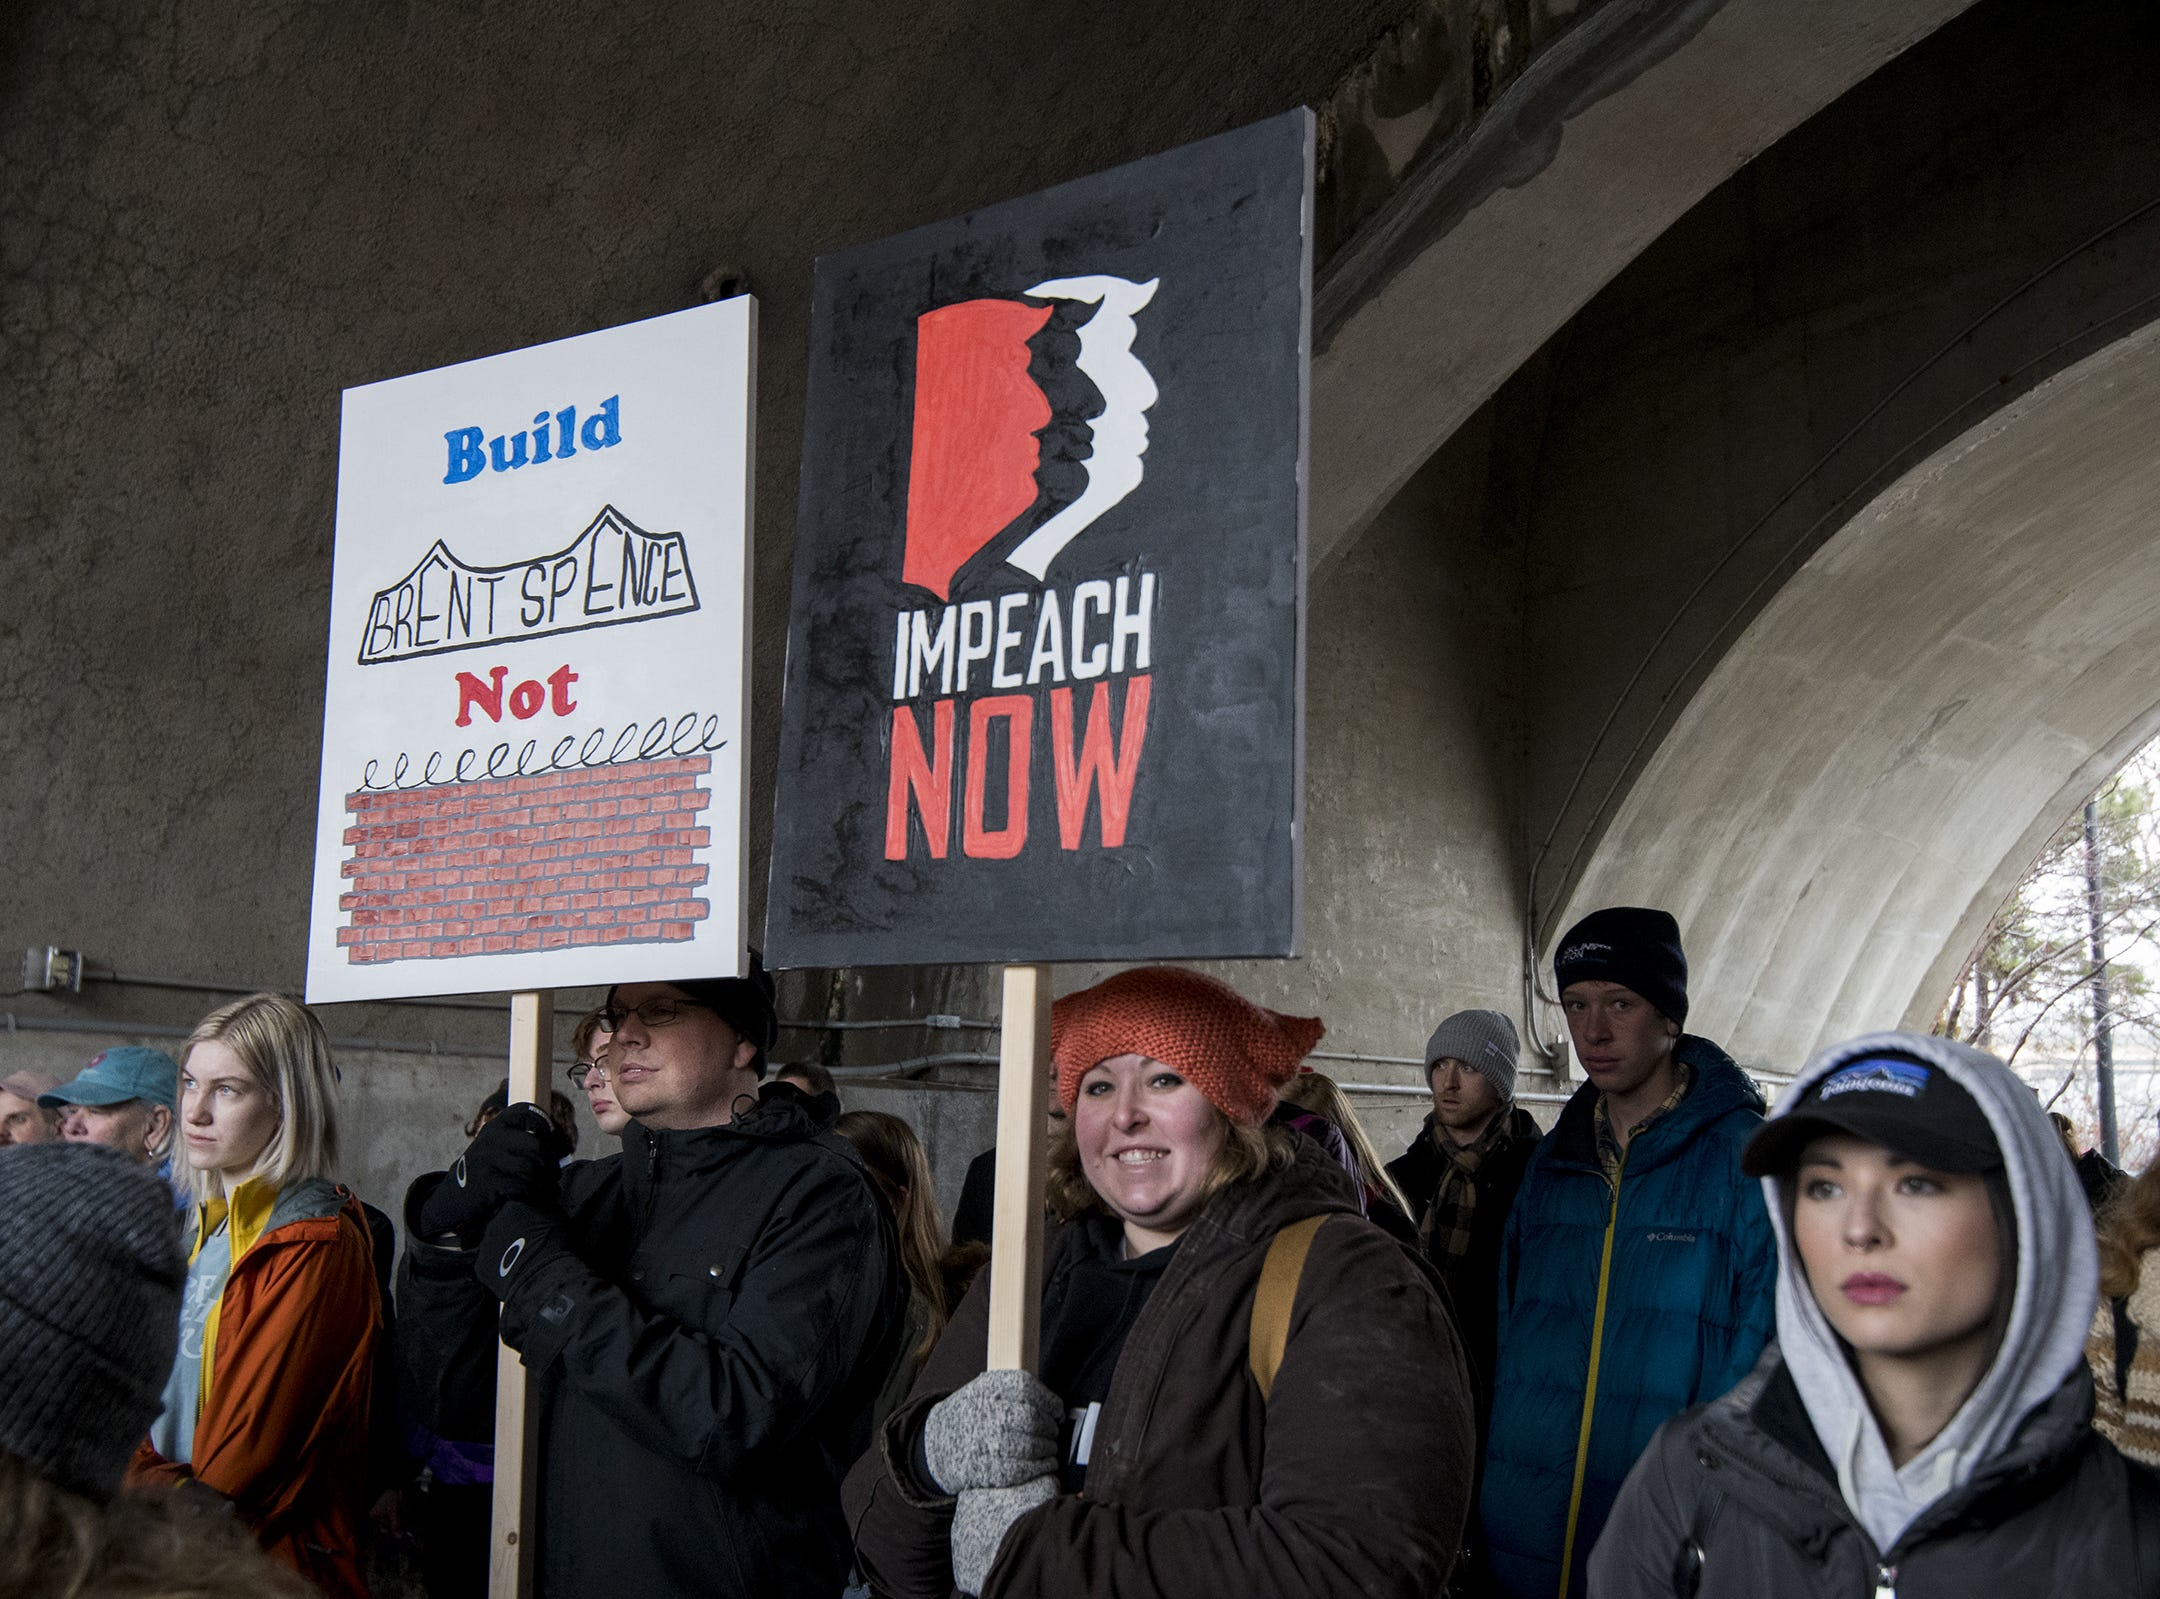 Anthony Pankala and Jeanette Geisler hold sign of protest during the 2019 Women's March organized by the Cincinnati chapters of Socialist Alternative, Democratic Socialists of America and the International Socialist Organization Saturday, January 19, 2019 in Cincinnati, Ohio.